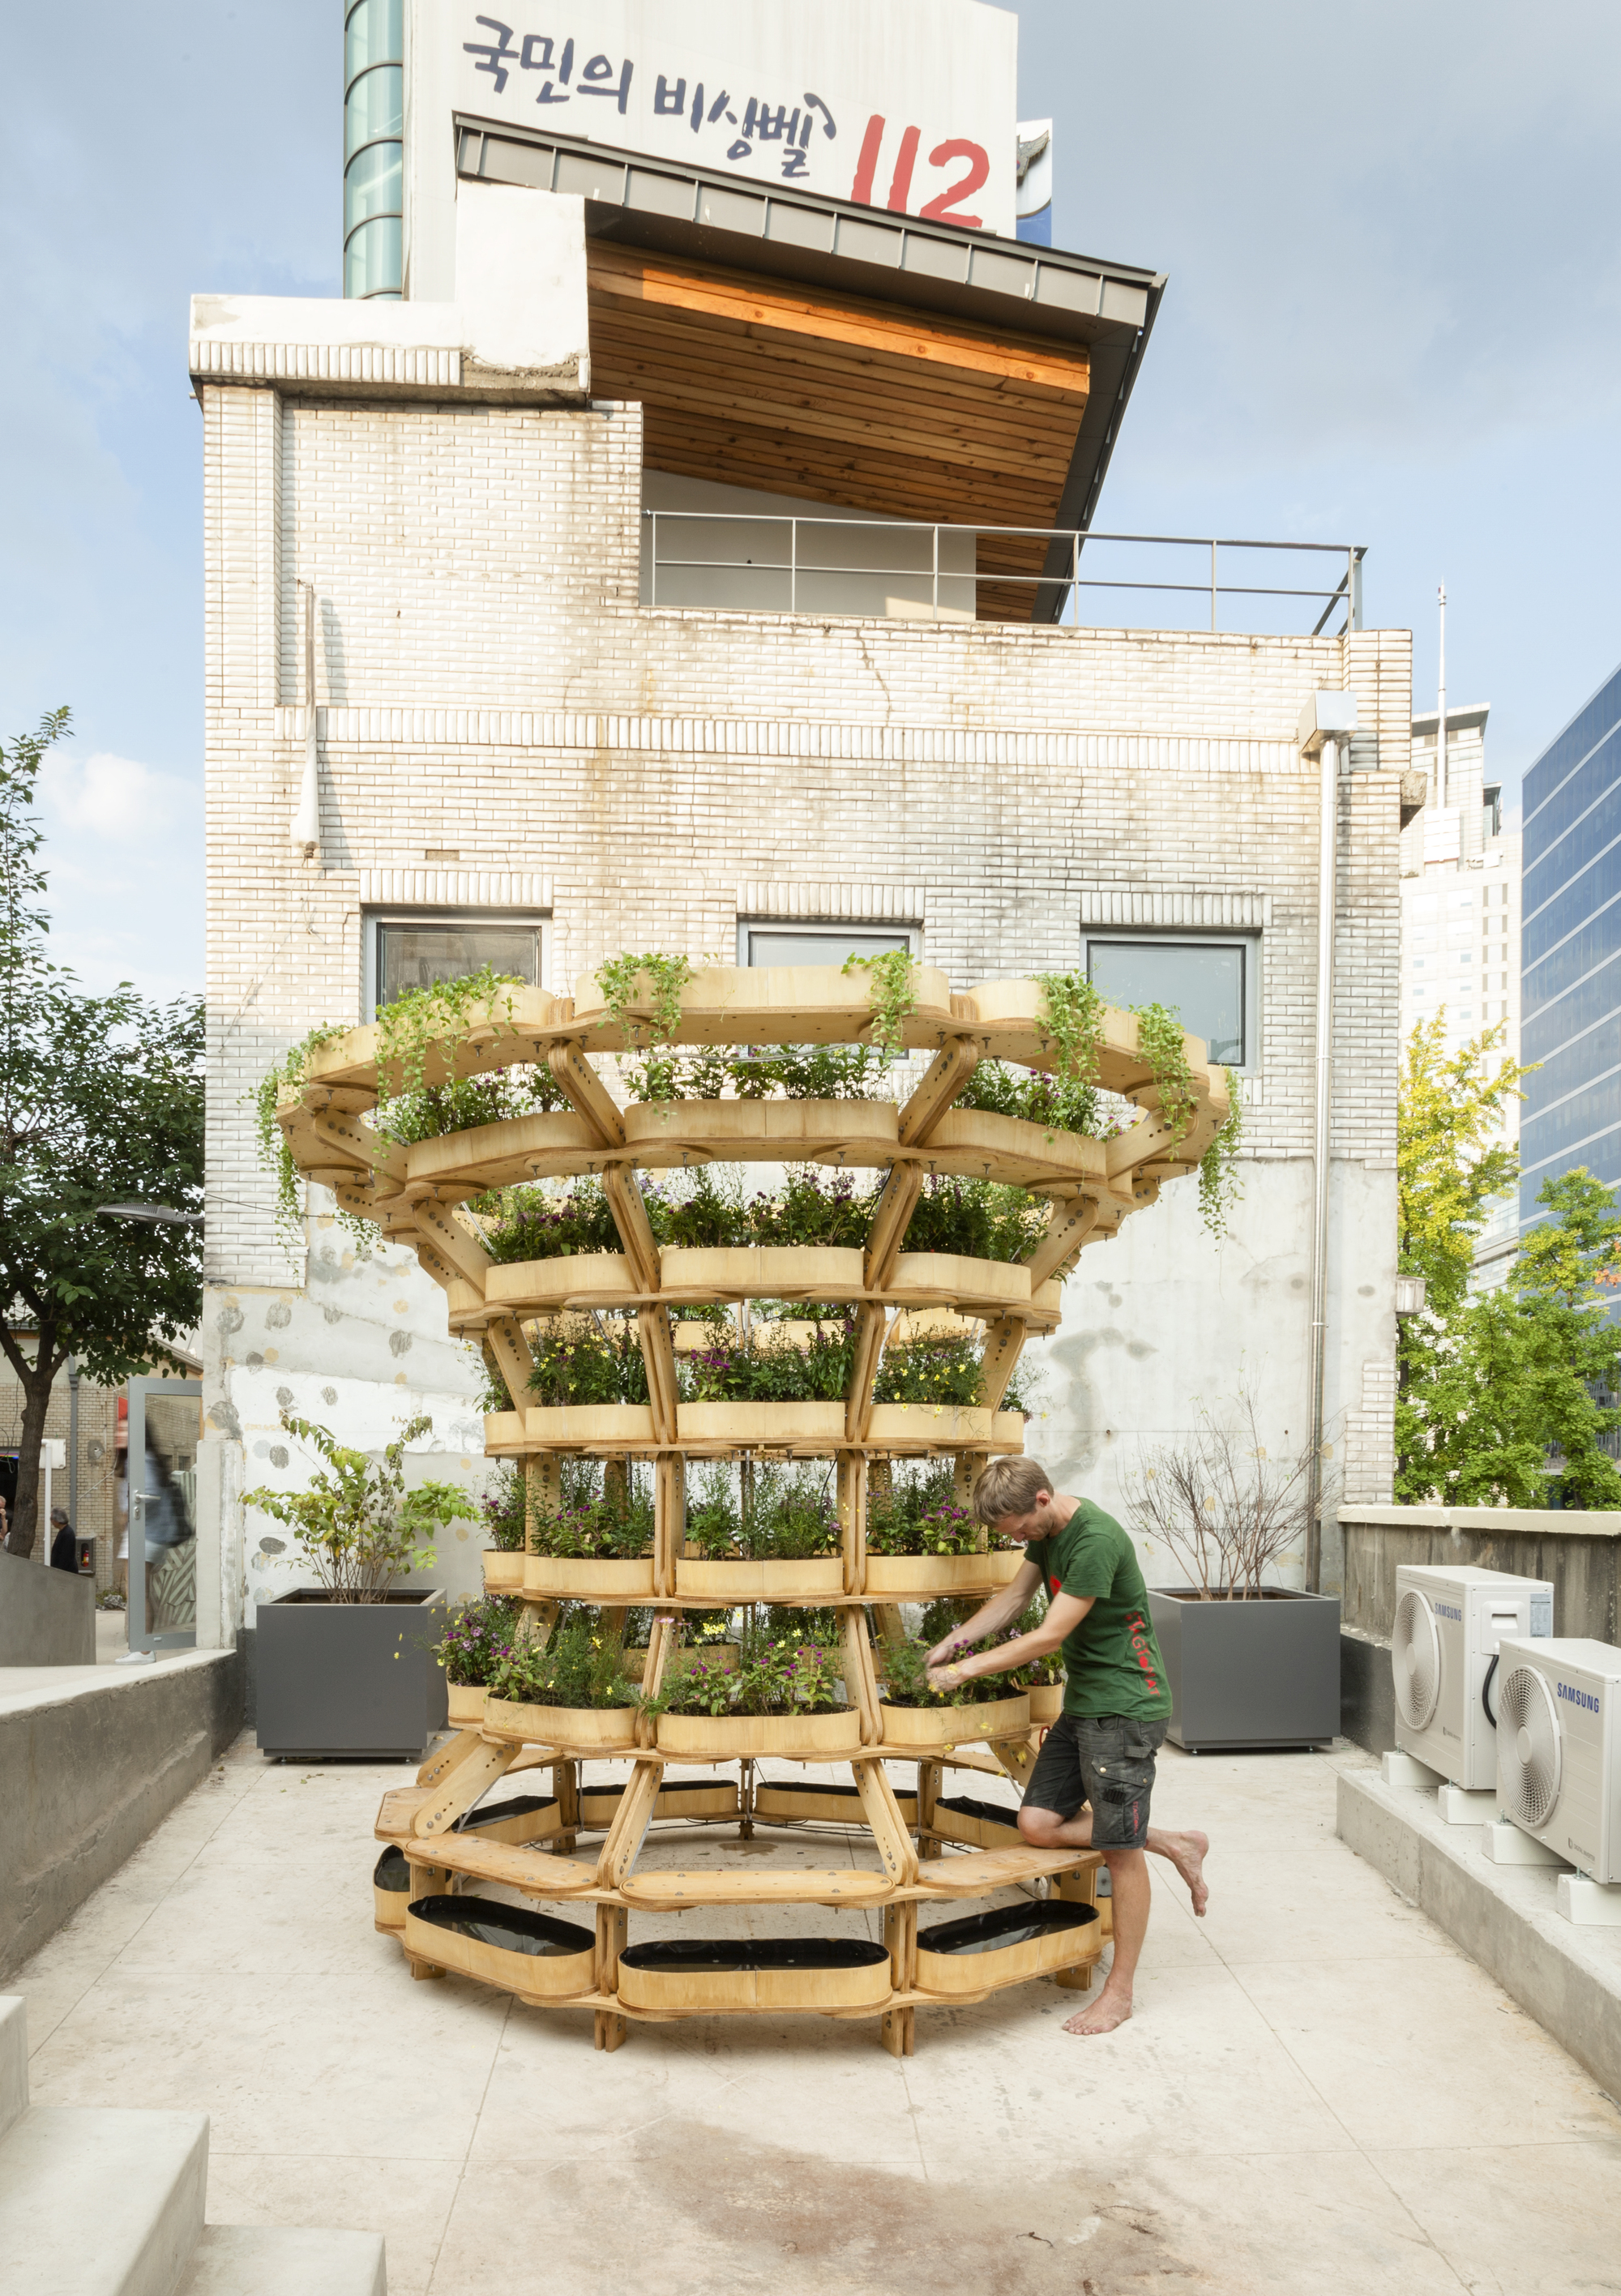 Open Source Plan for a Modular Urban Gardening Structure Offers a Flexible  Design for Locally Grown